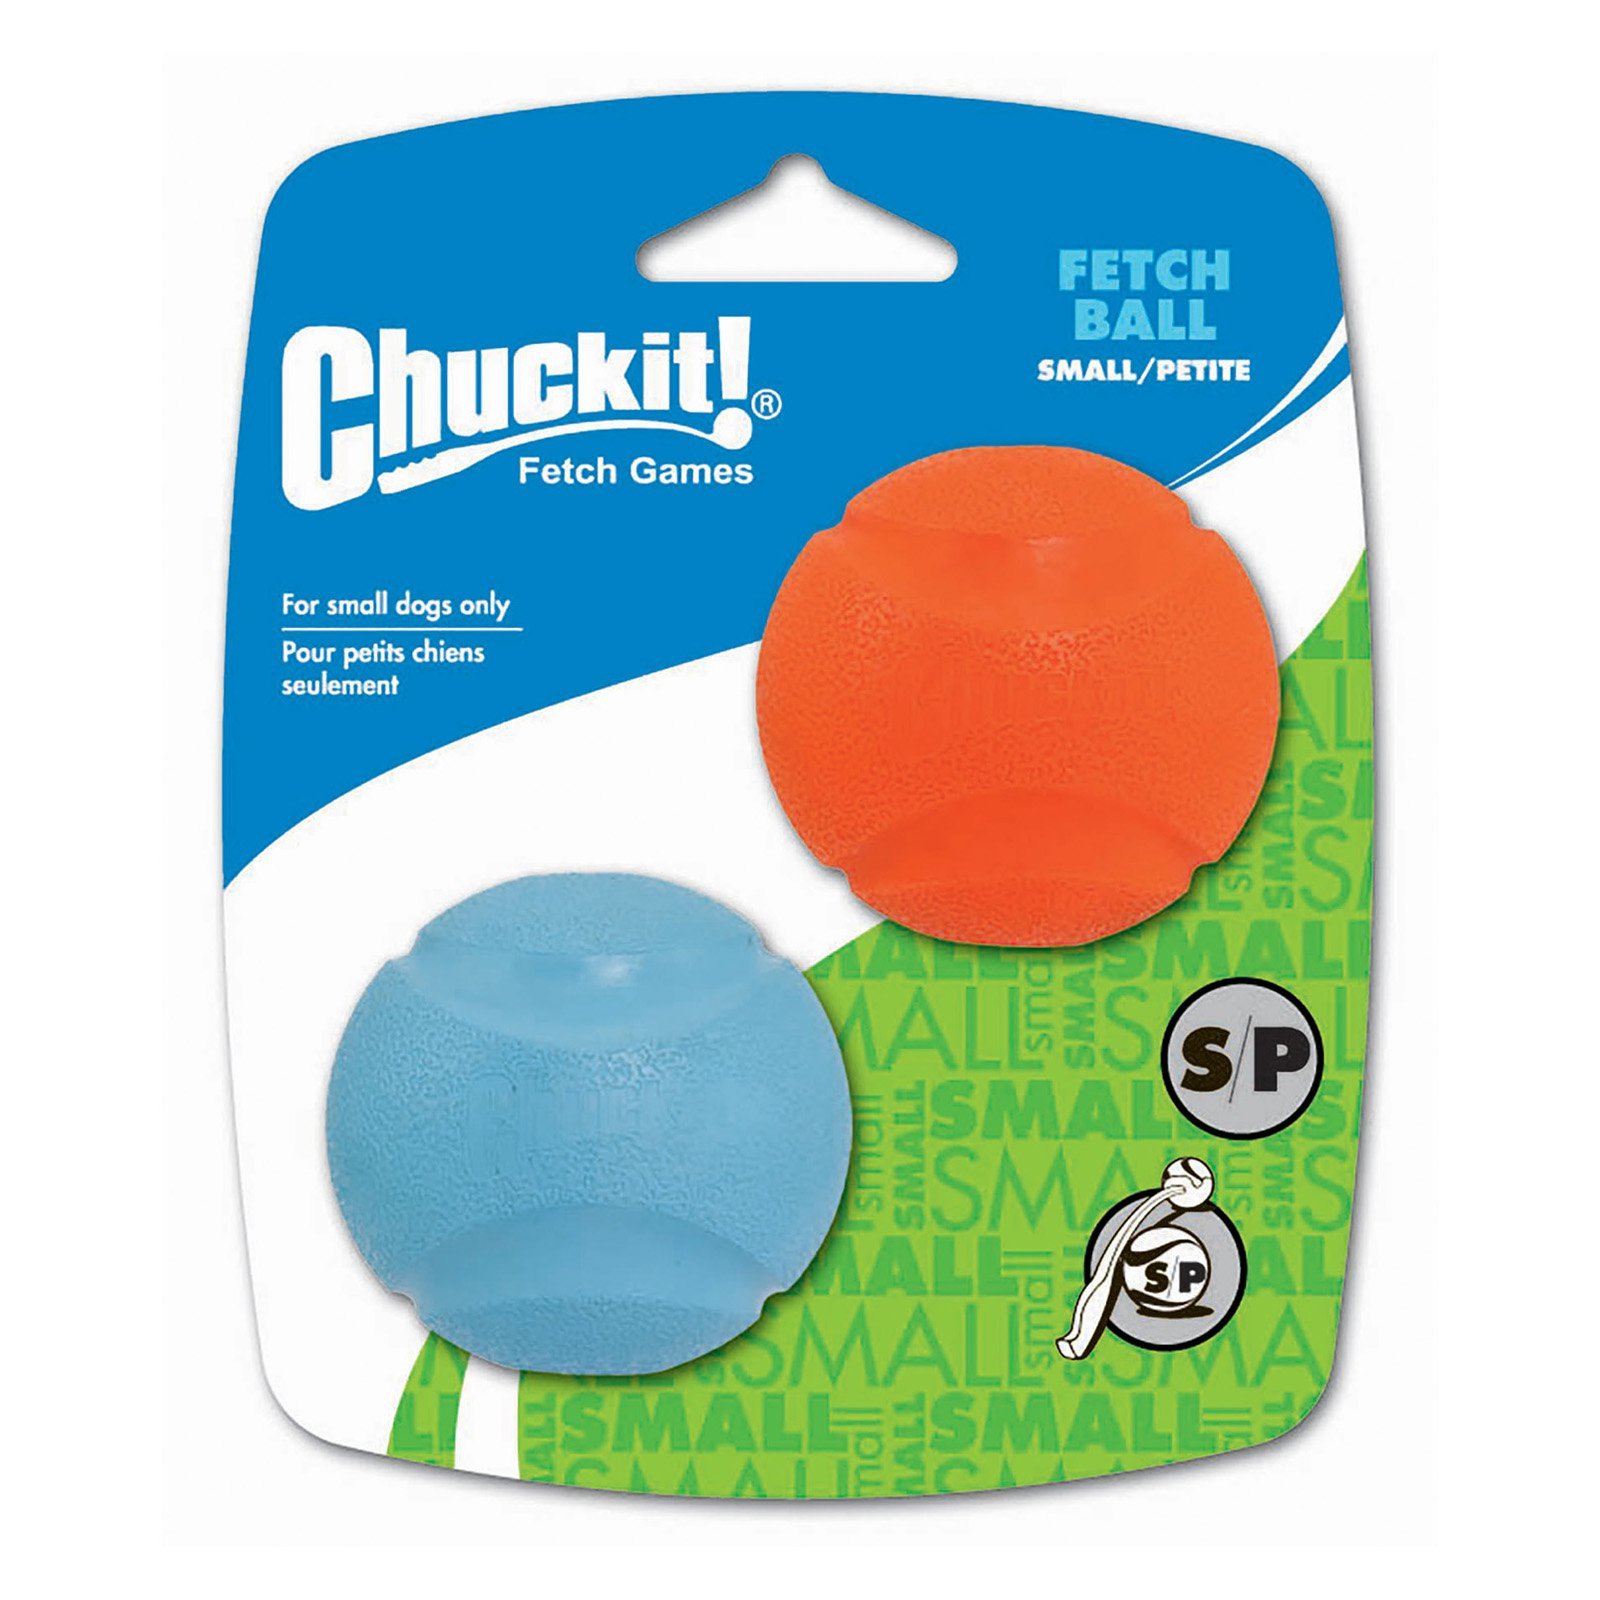 Chuckit! Fetch Ball Small Dog Toy, 2 Pack (Color may vary)